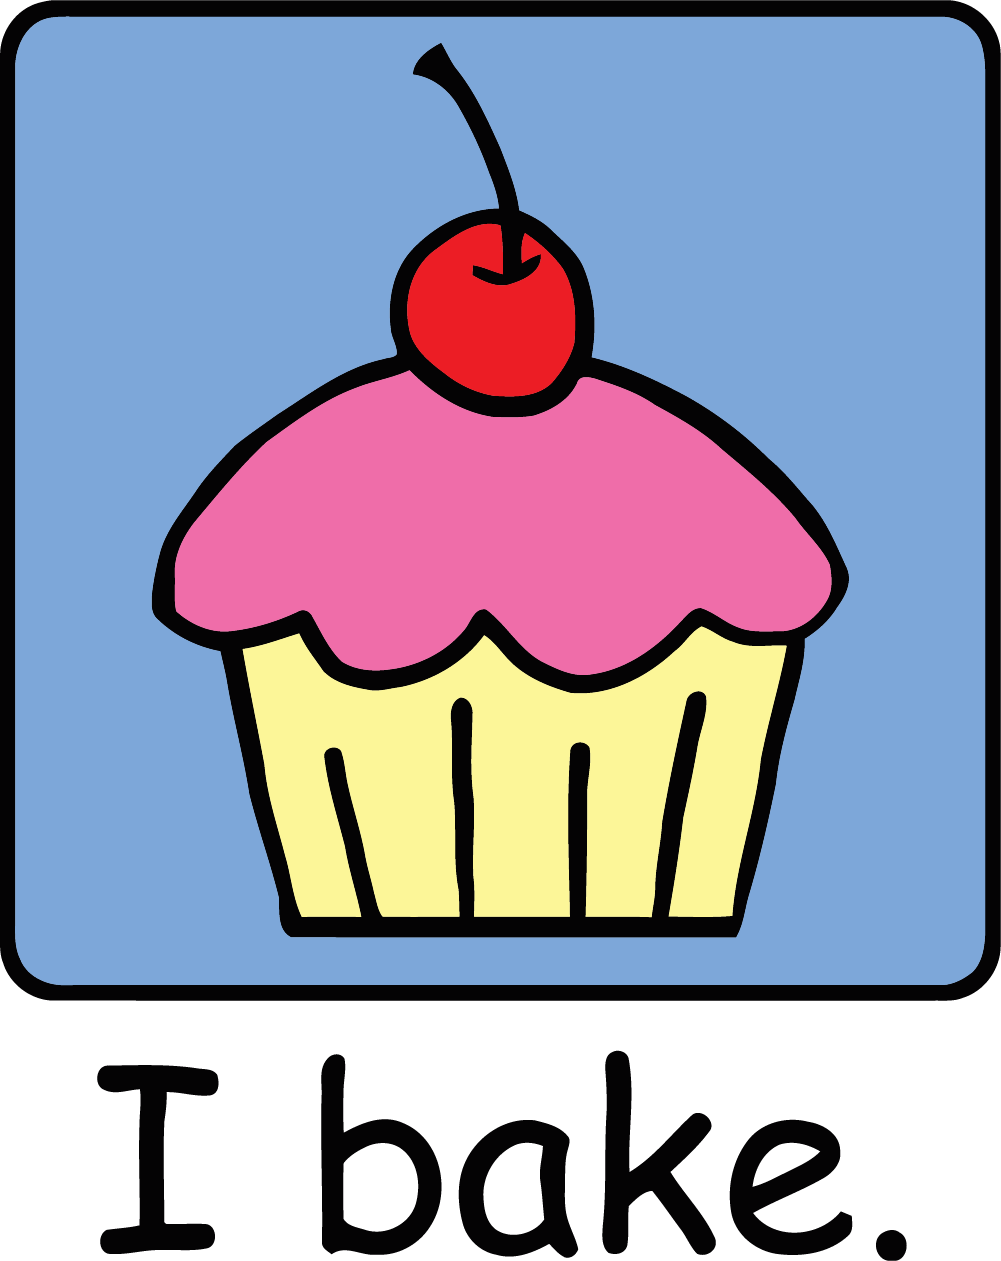 1001x1261 Galaxy Cupcakes Square Png Picture